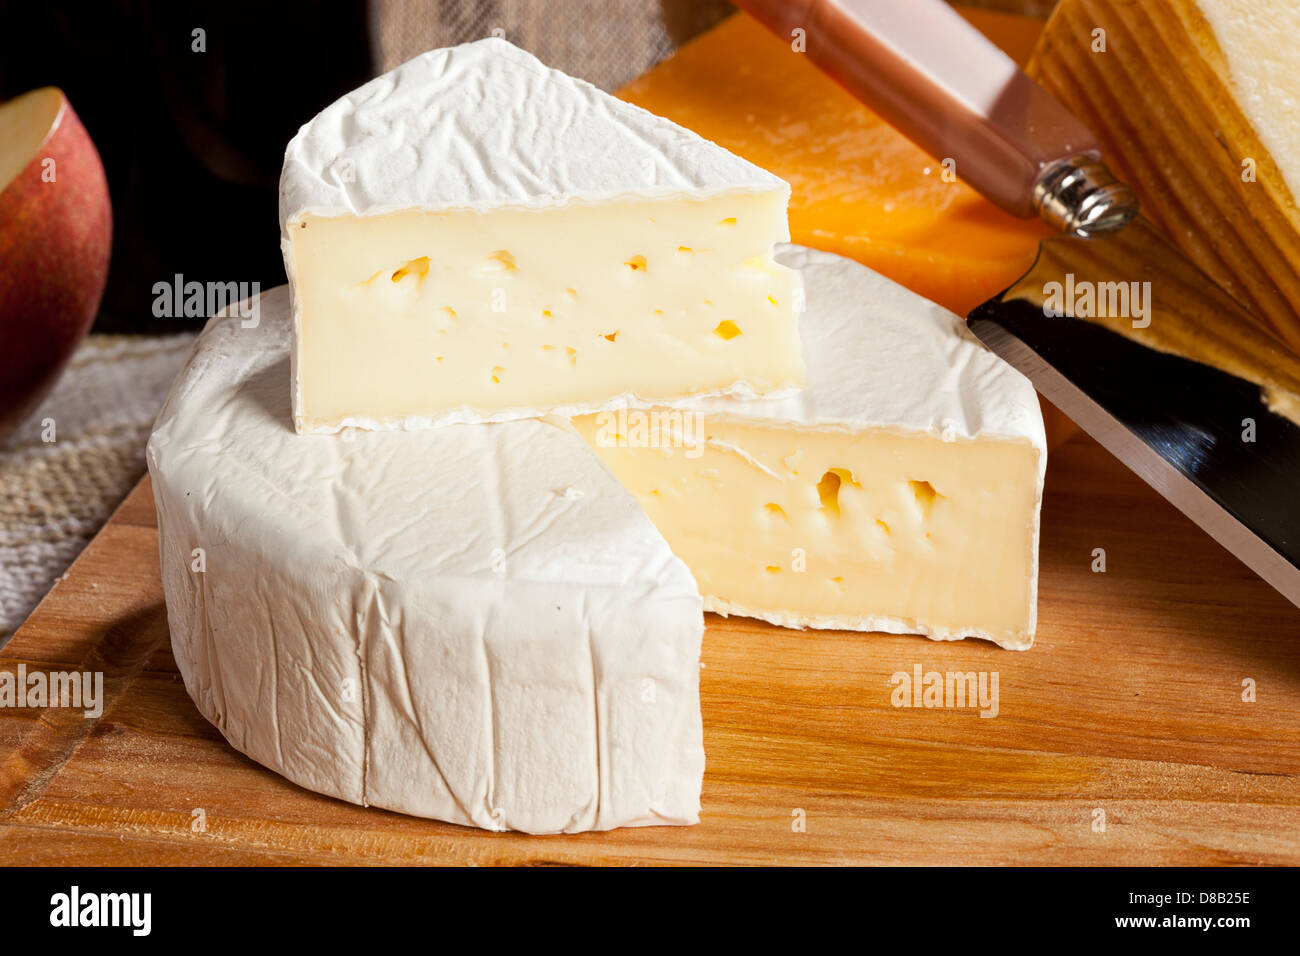 Fresh Organic White Brie Cheese on a background - Stock Image